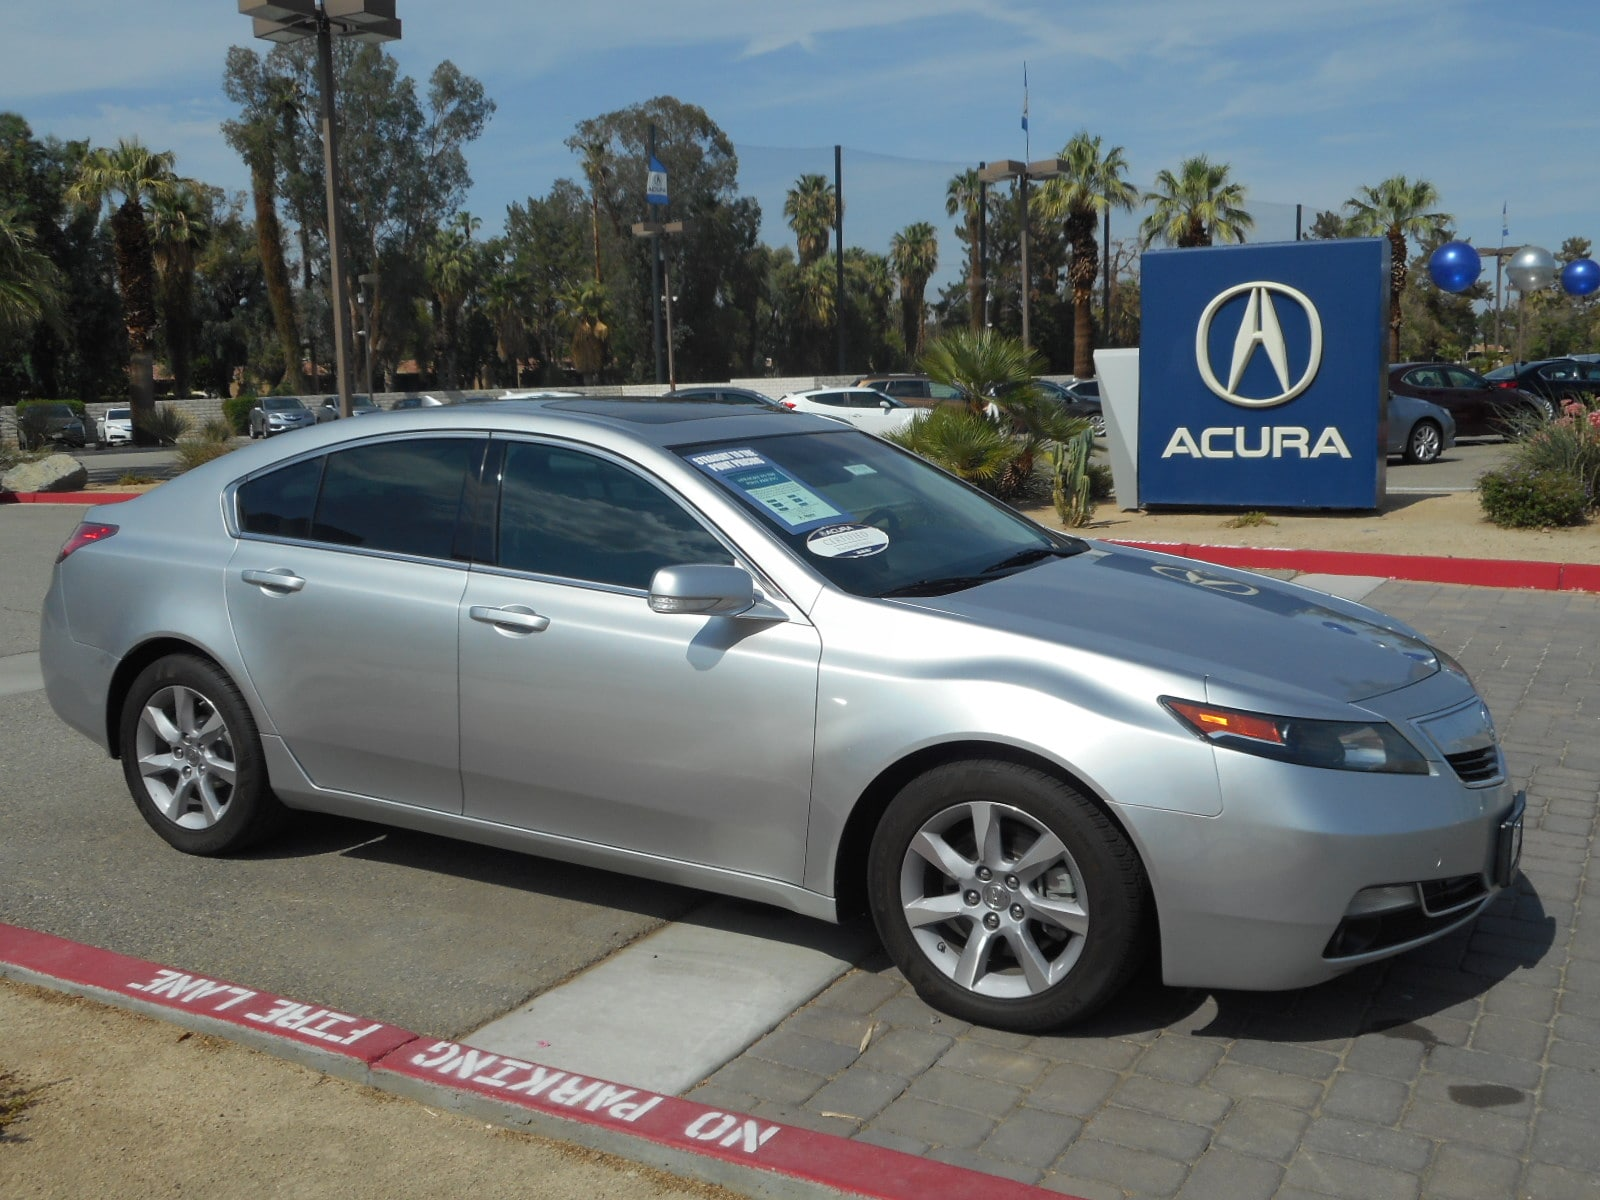 Acura Of The Desert Vehicles For Sale In Cathedral City CA - Acura tl lease offers